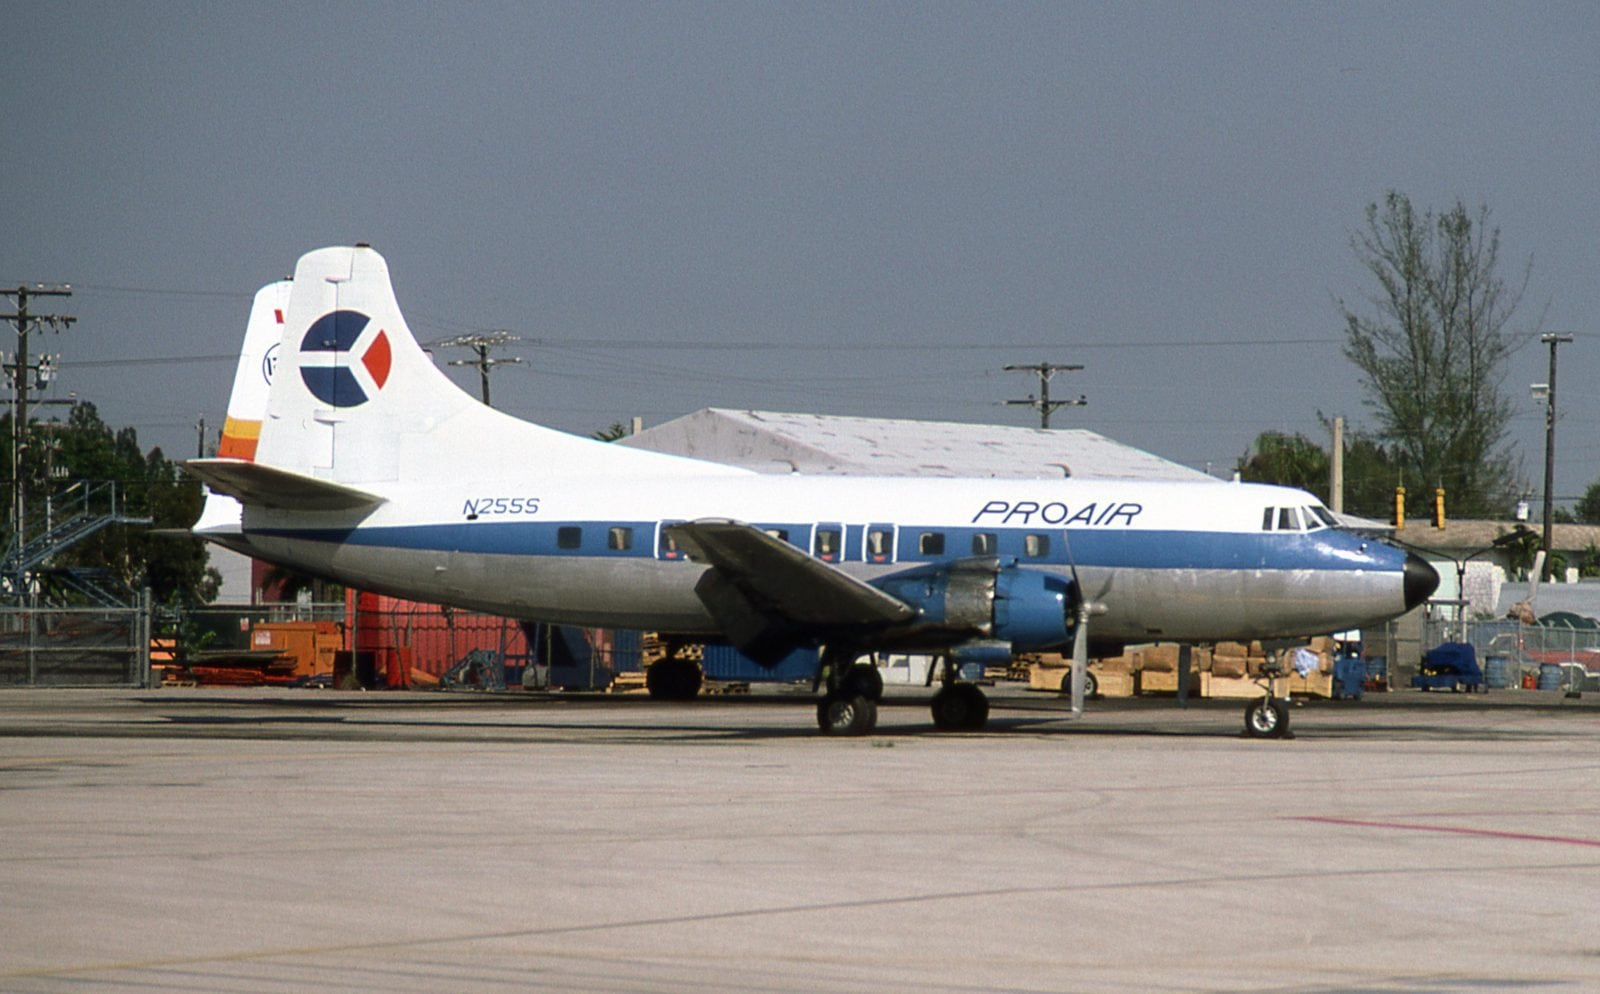 Martin 404 N255S is pictured at Miami International on November 8, 1984